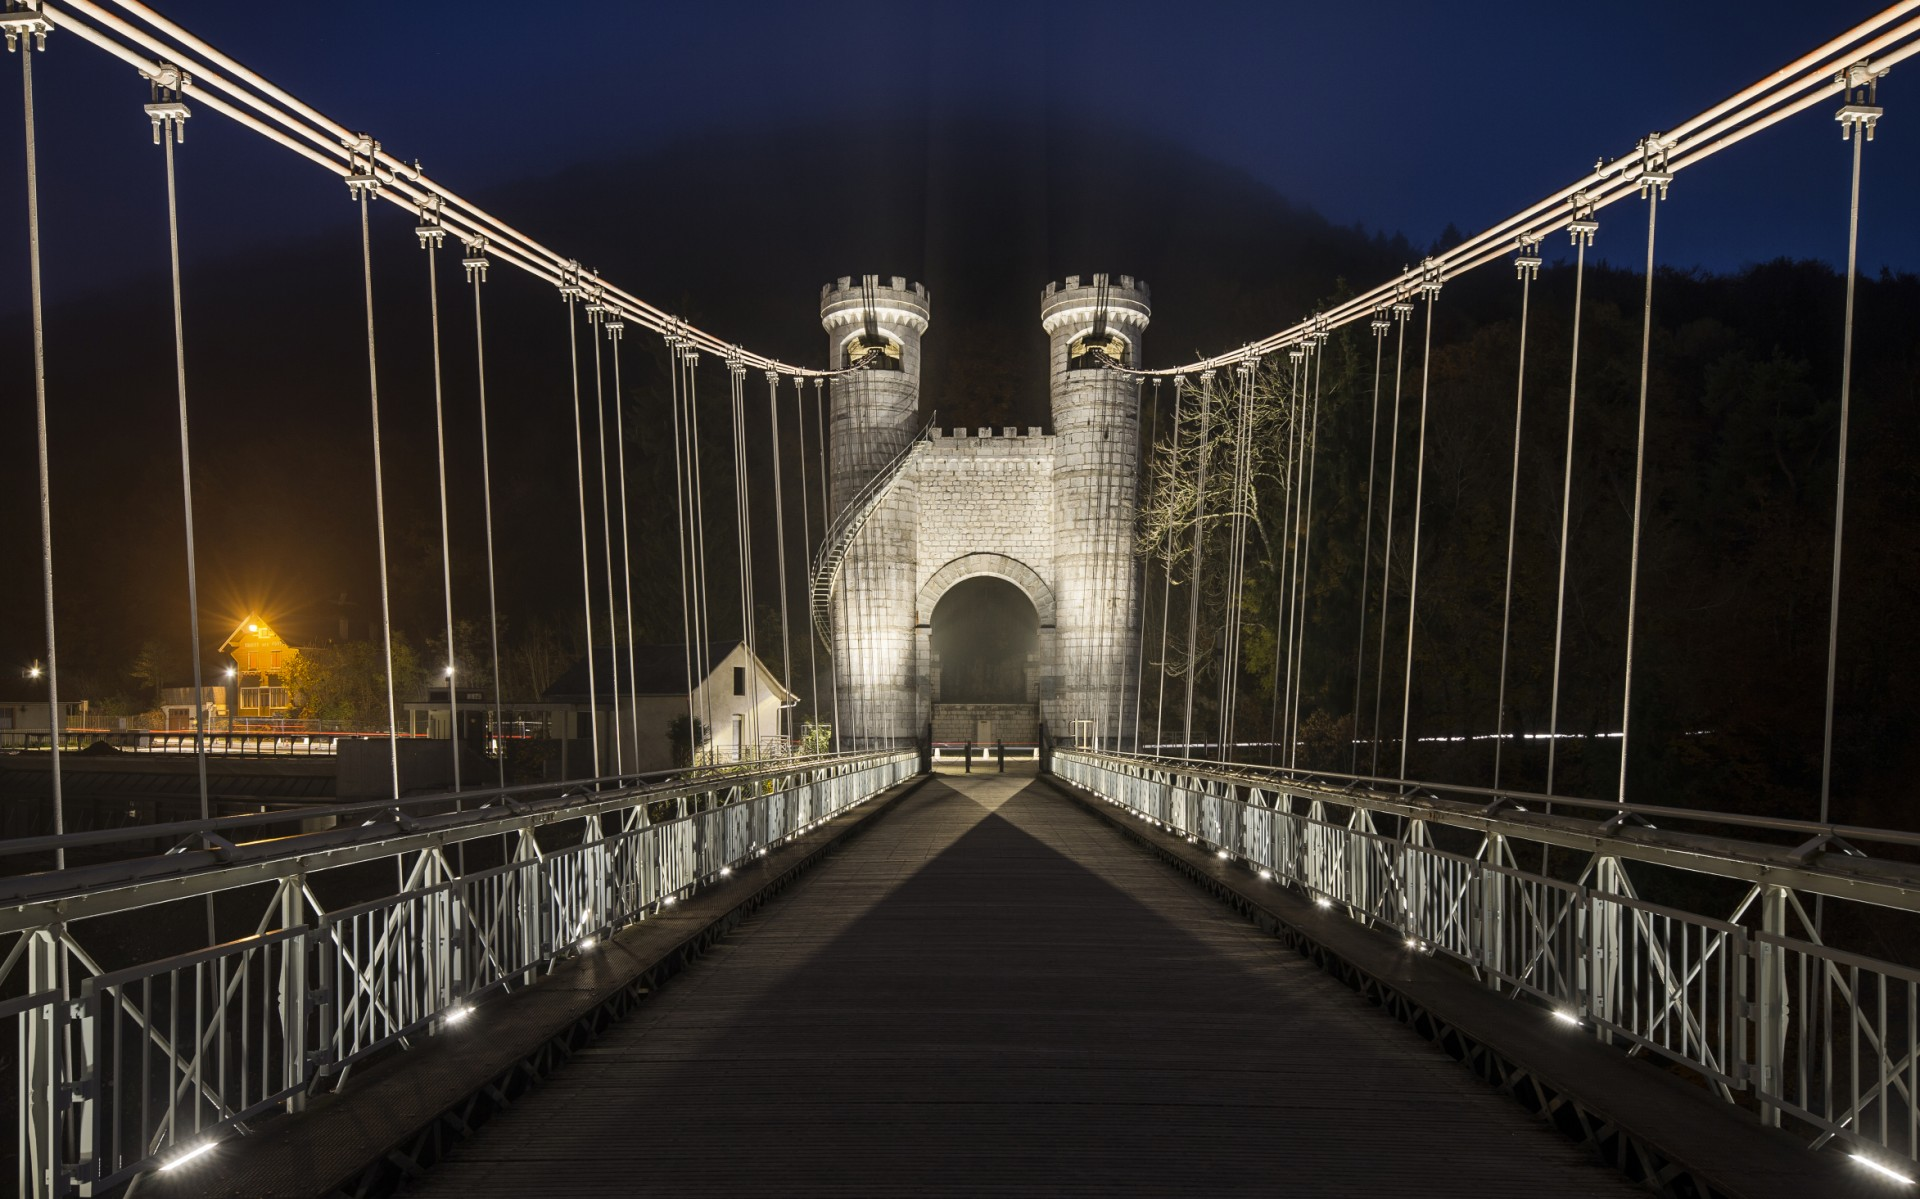 For the historic Charles Albert suspension bridge, Les Eclairagistes Associés chose 1-foot Lumenfacade luminaires in a warm, 3000K color temperature.